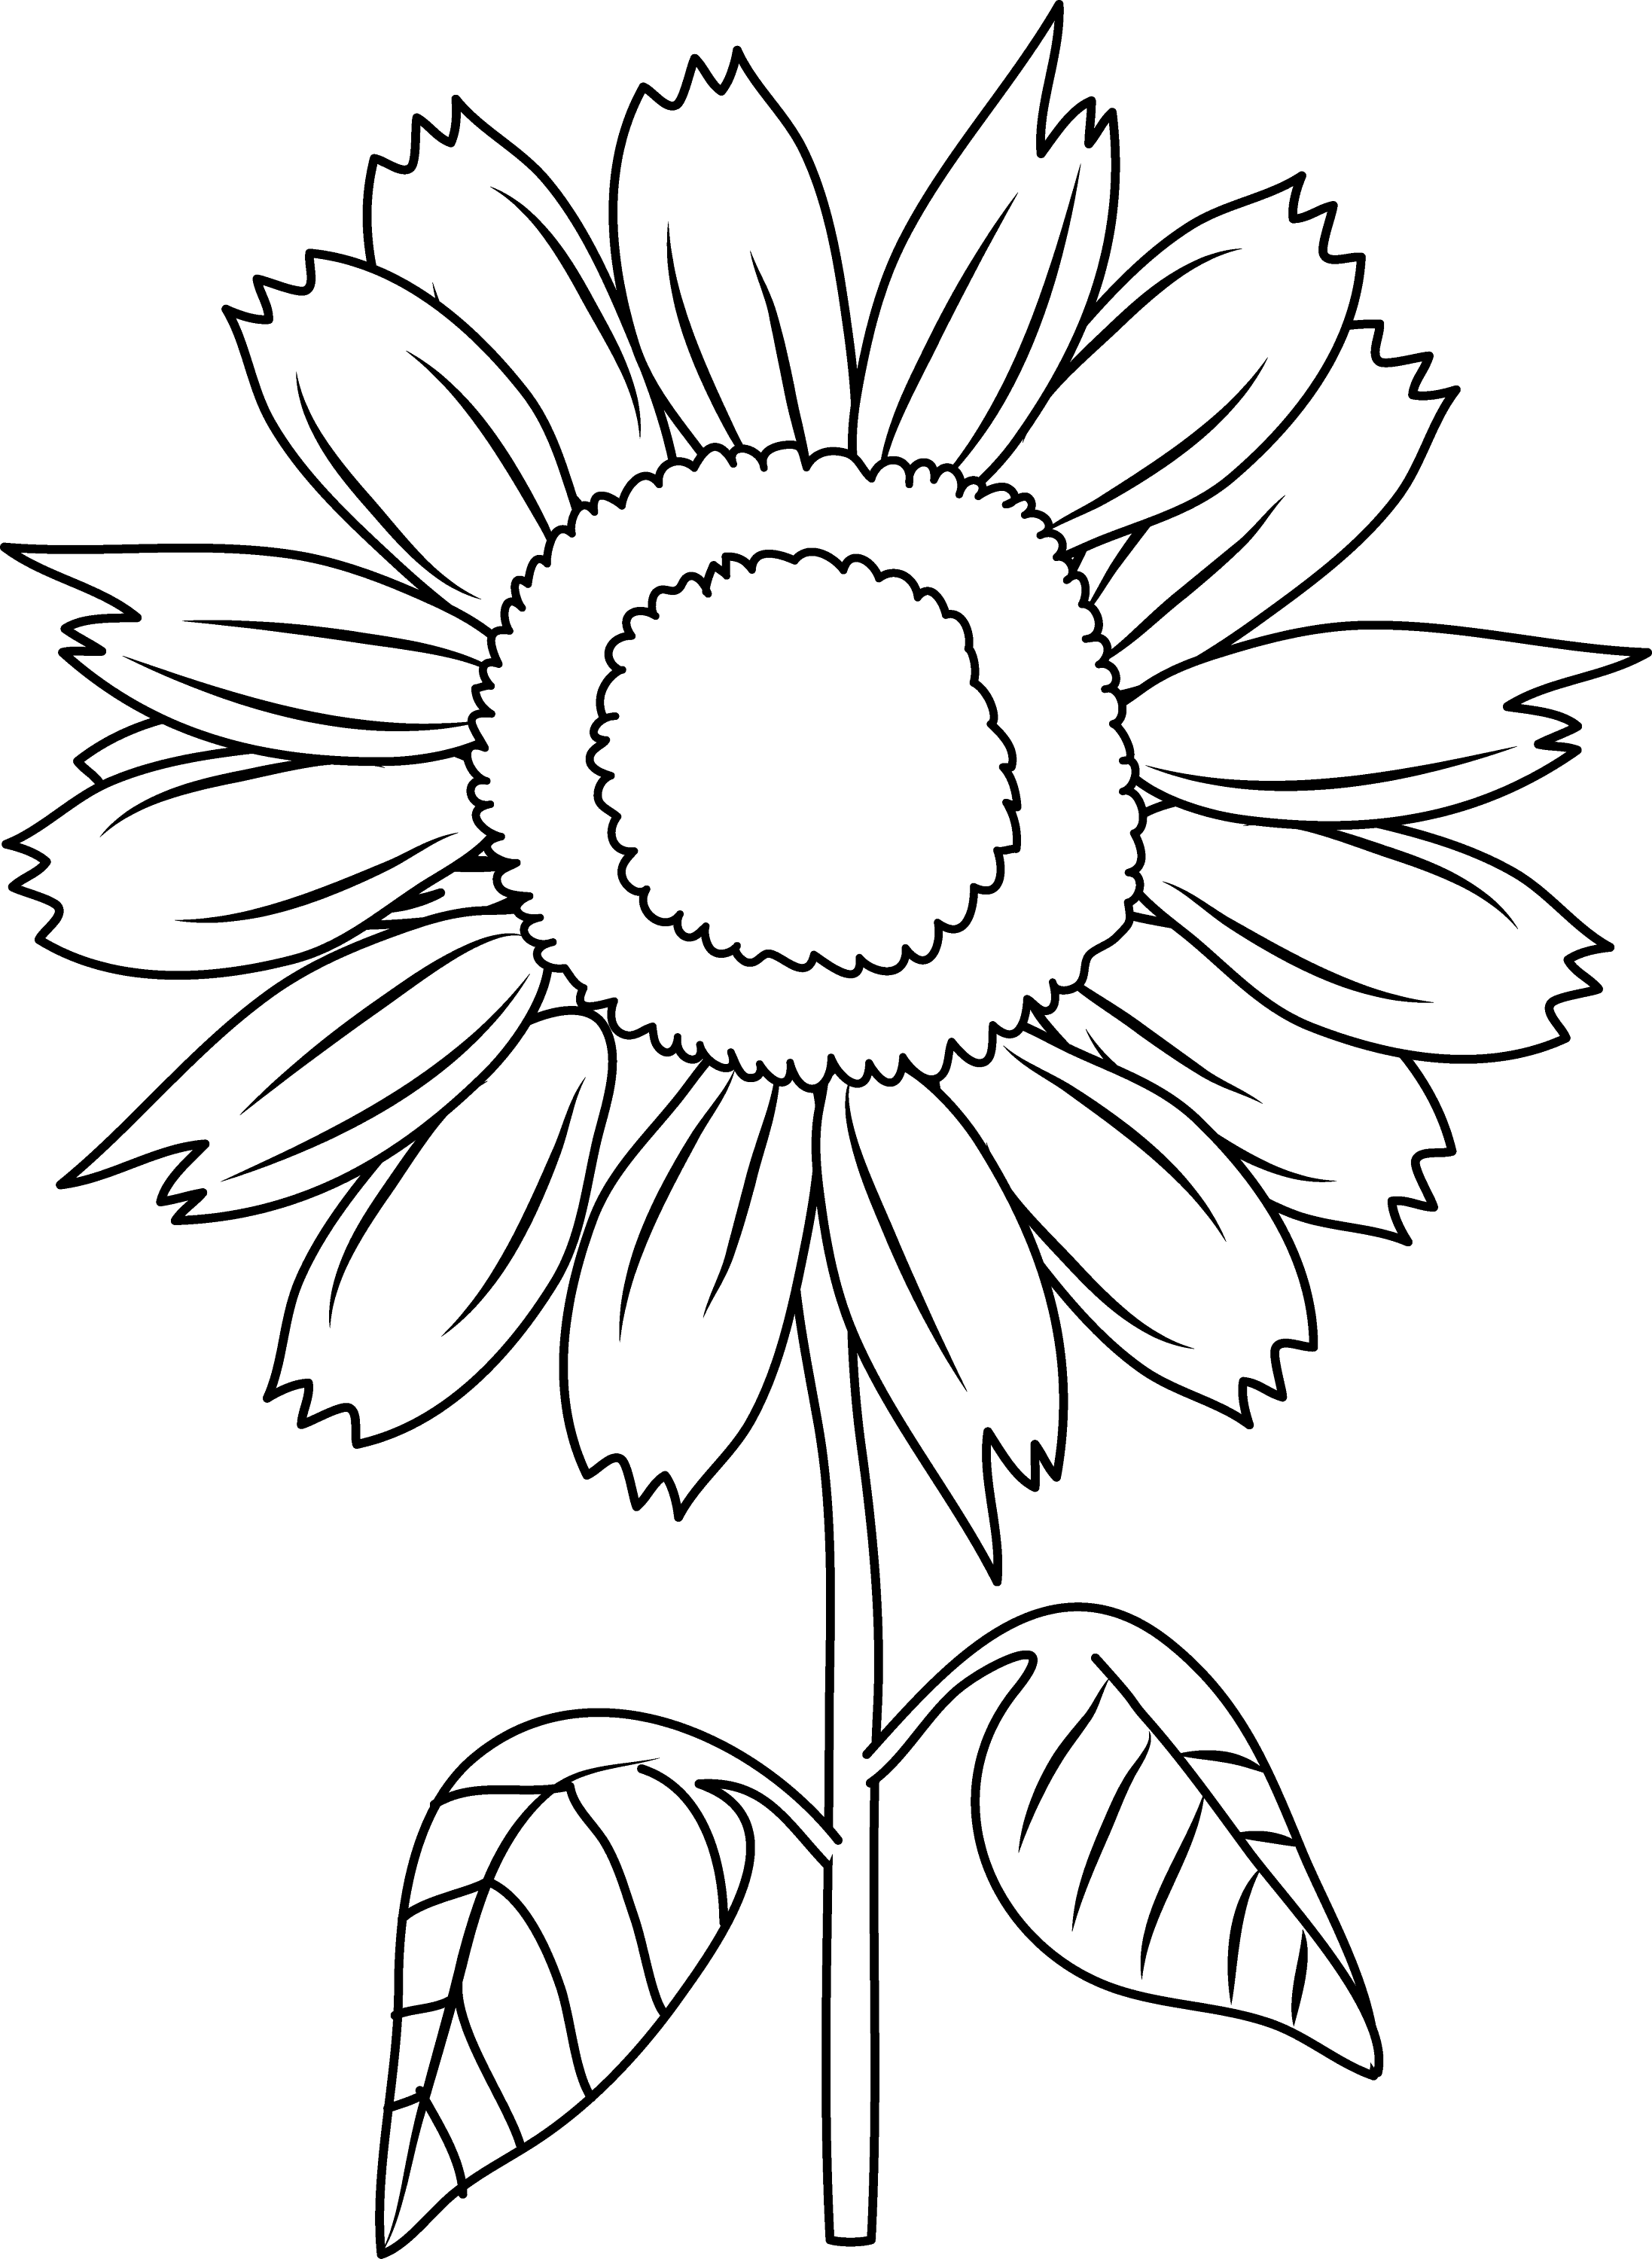 sunflower coloring page sunflower coloring pages download and print sunflower sunflower page coloring